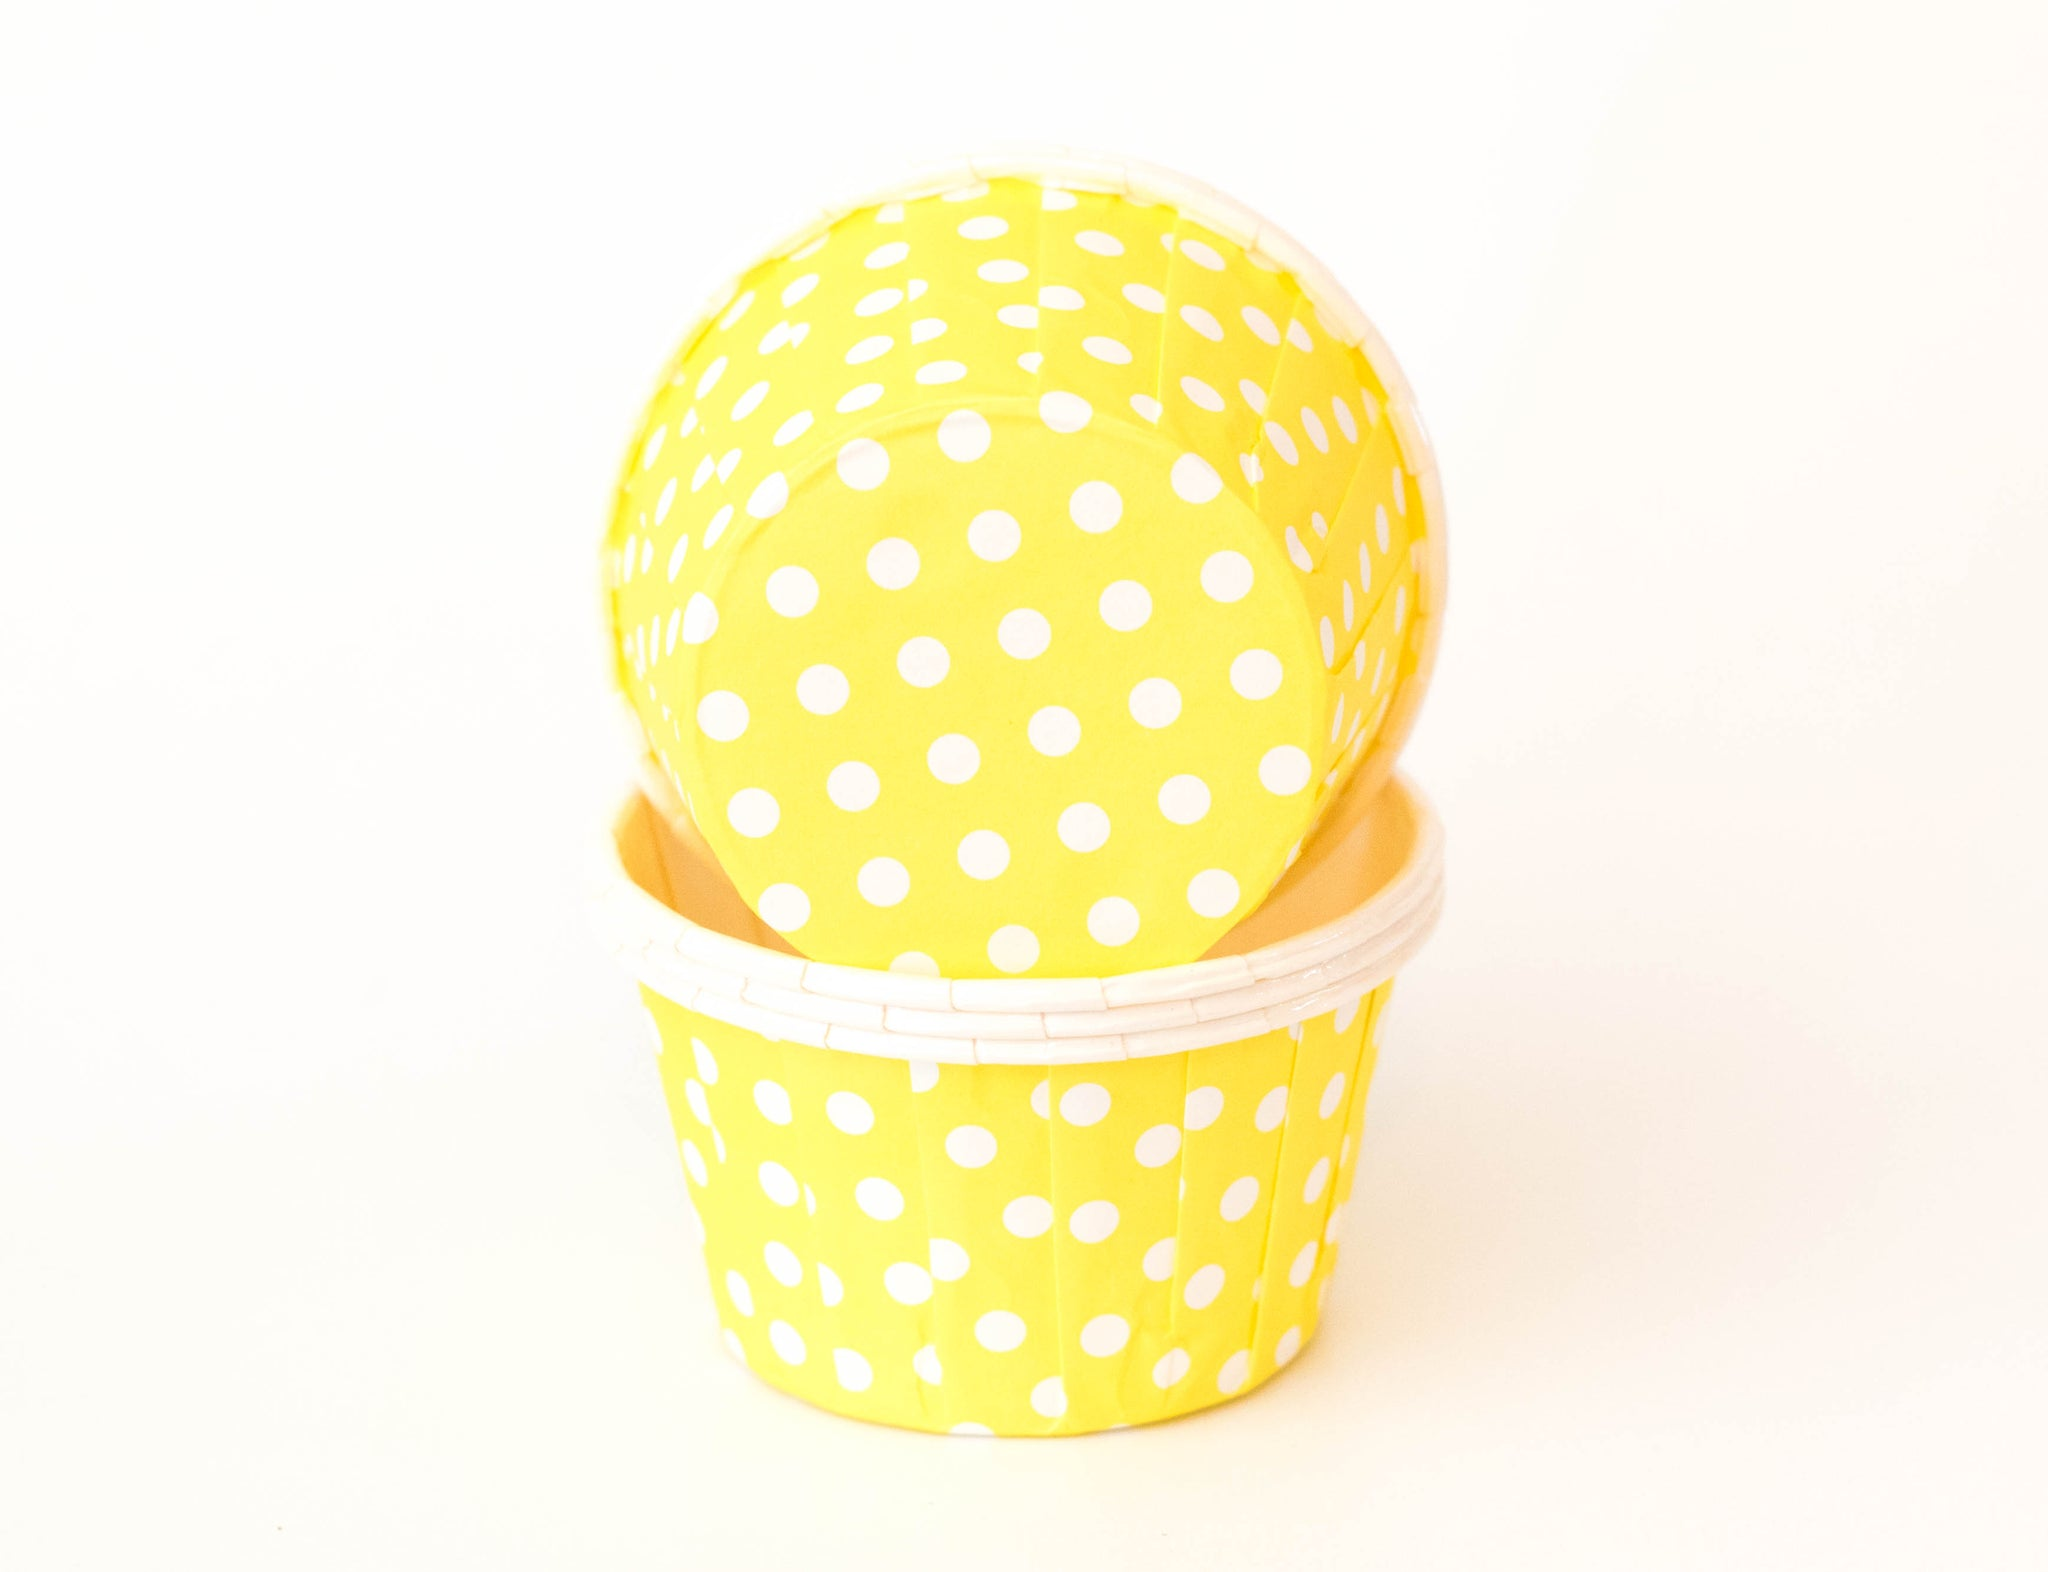 Baking Cups - Yellow Polka Dot - Pkg of 24